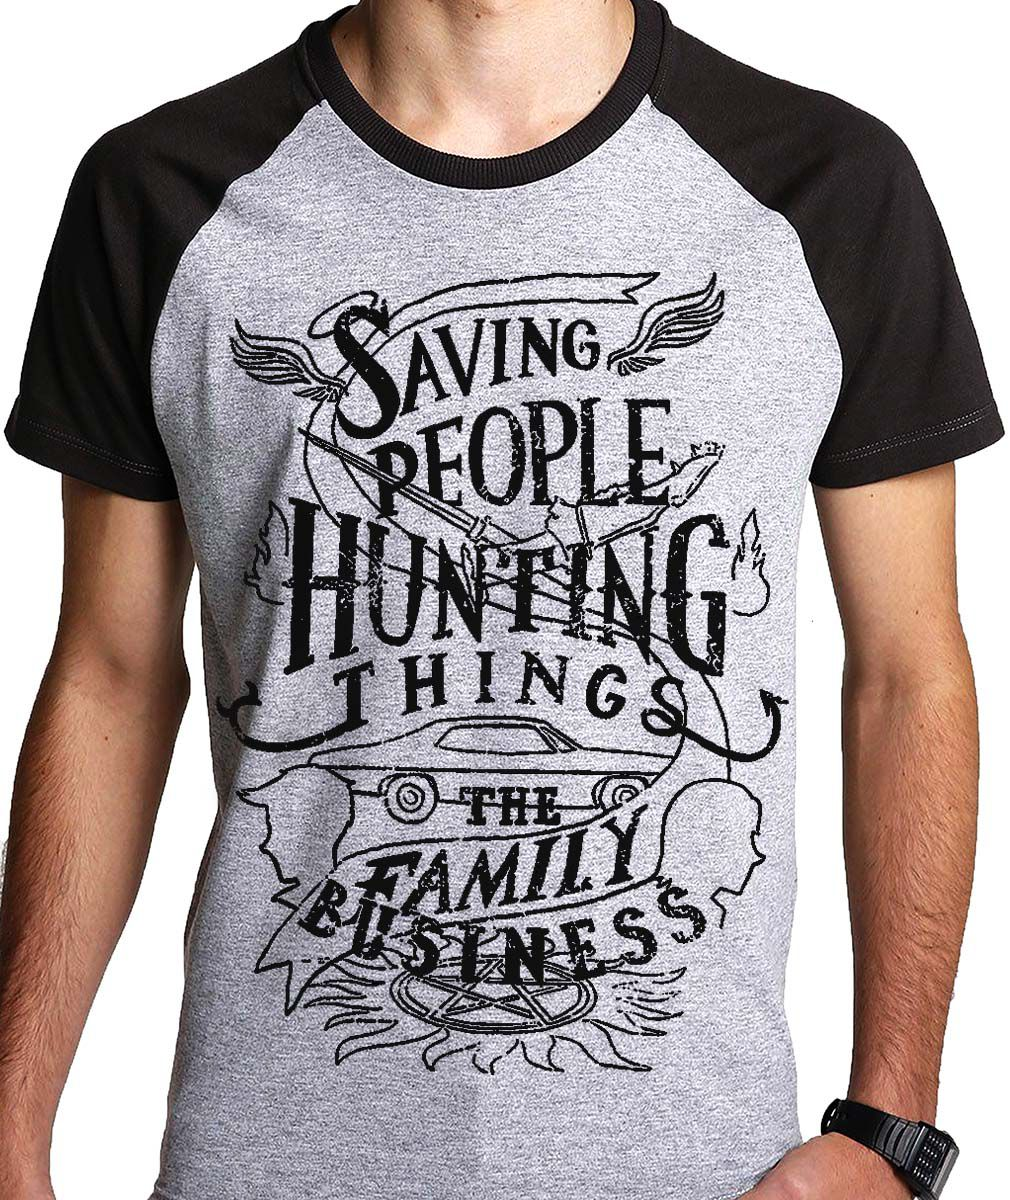 Camiseta Saving People Hunting things FAmily BusinessNerd / Geek   - Dragon Store